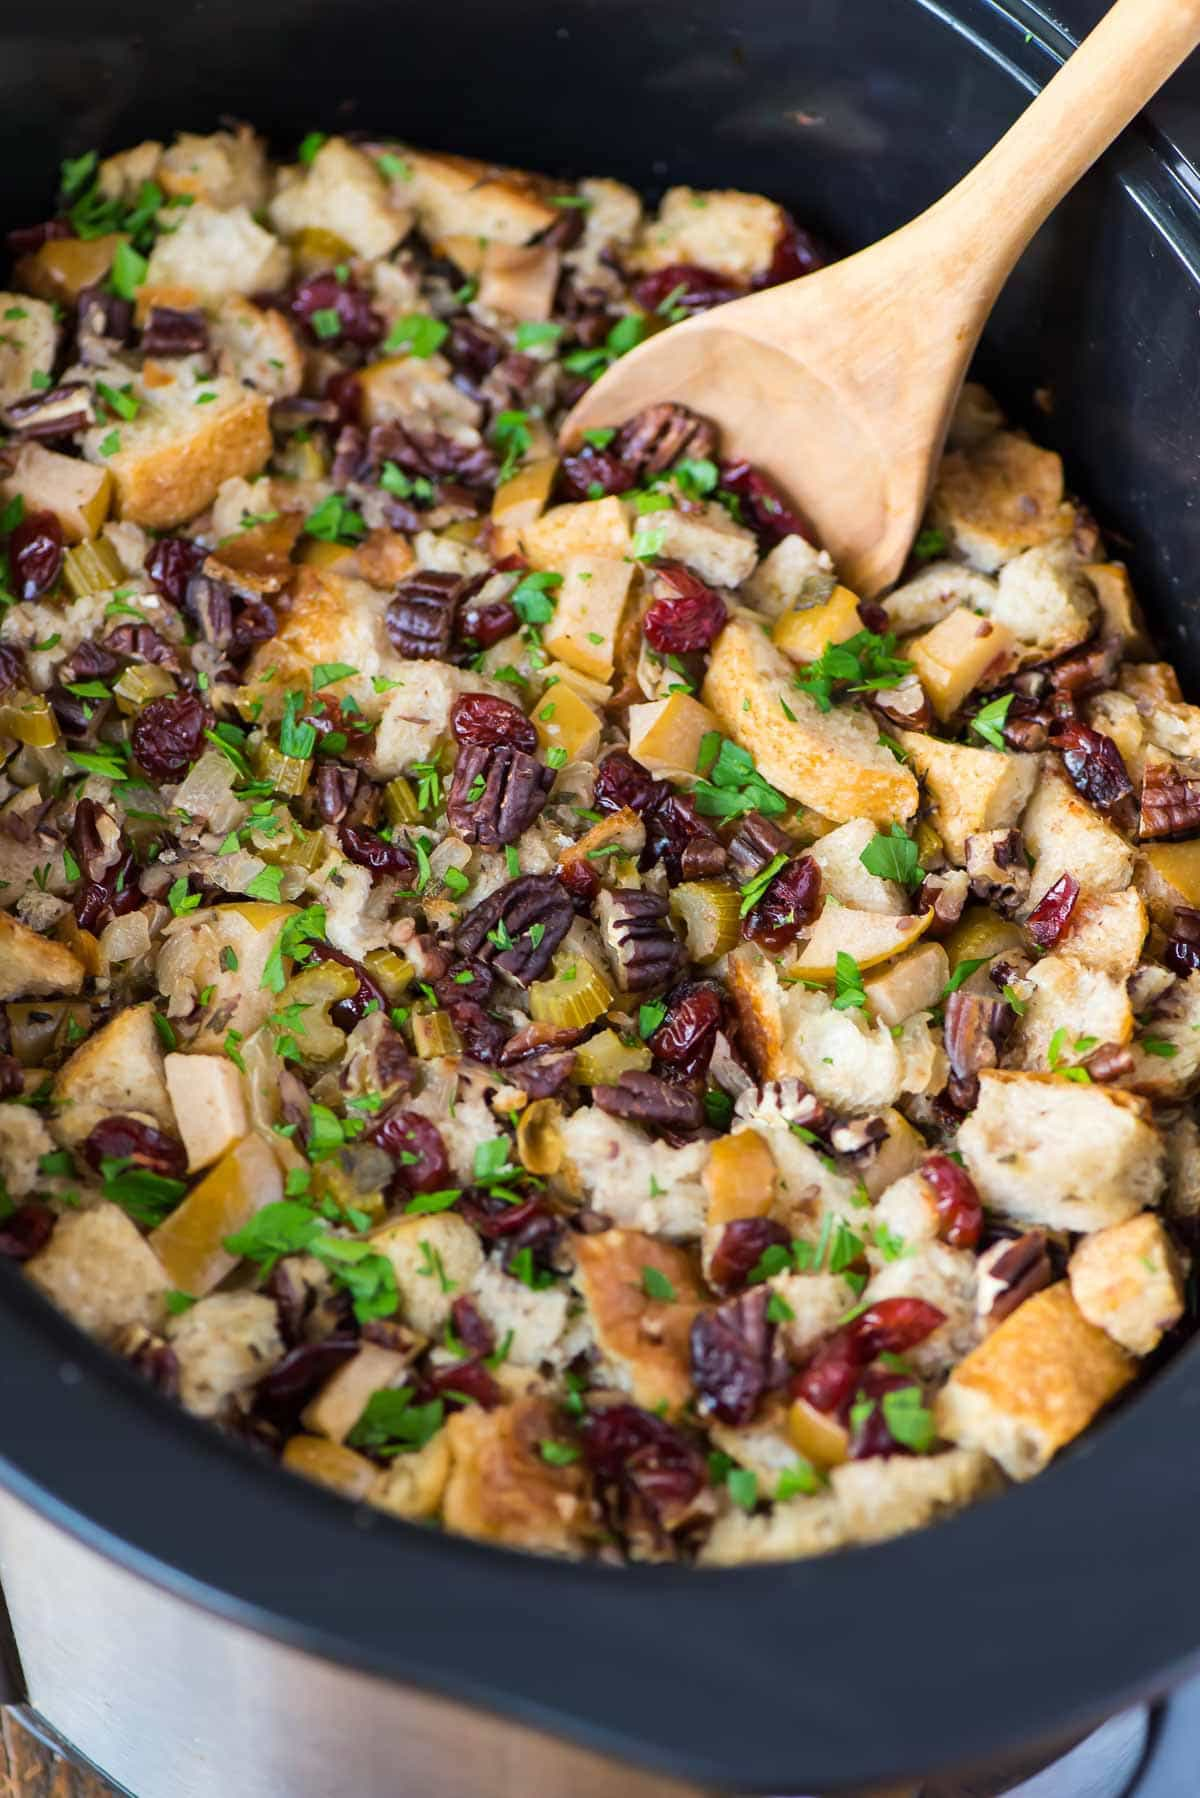 Crock pot stuffing with cranberries